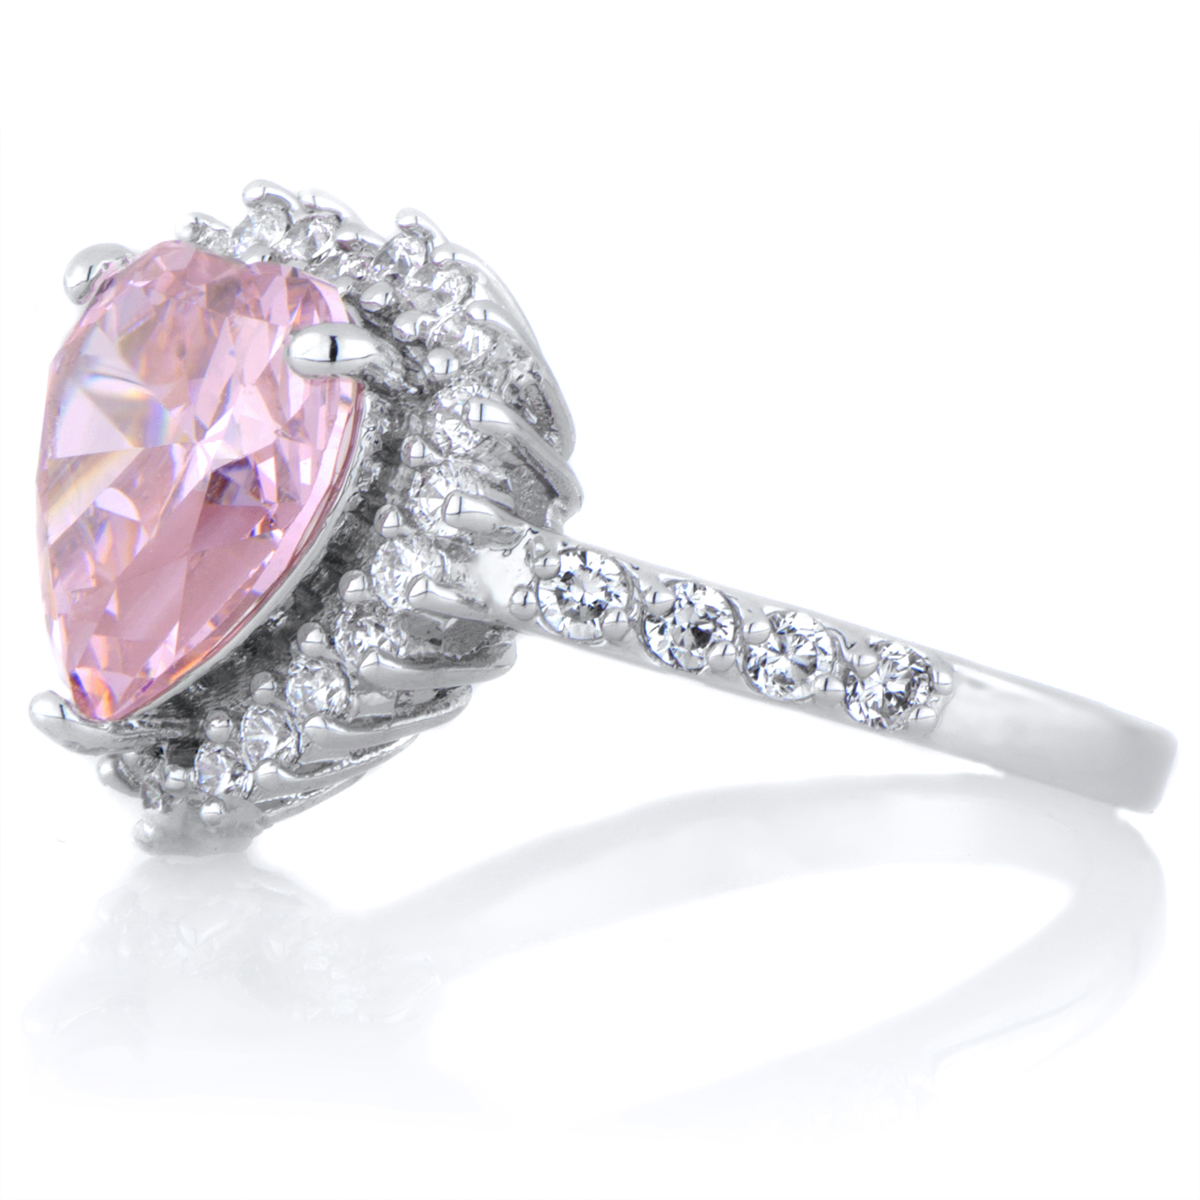 Darling s Pink Heart Shaped Engagement Ring